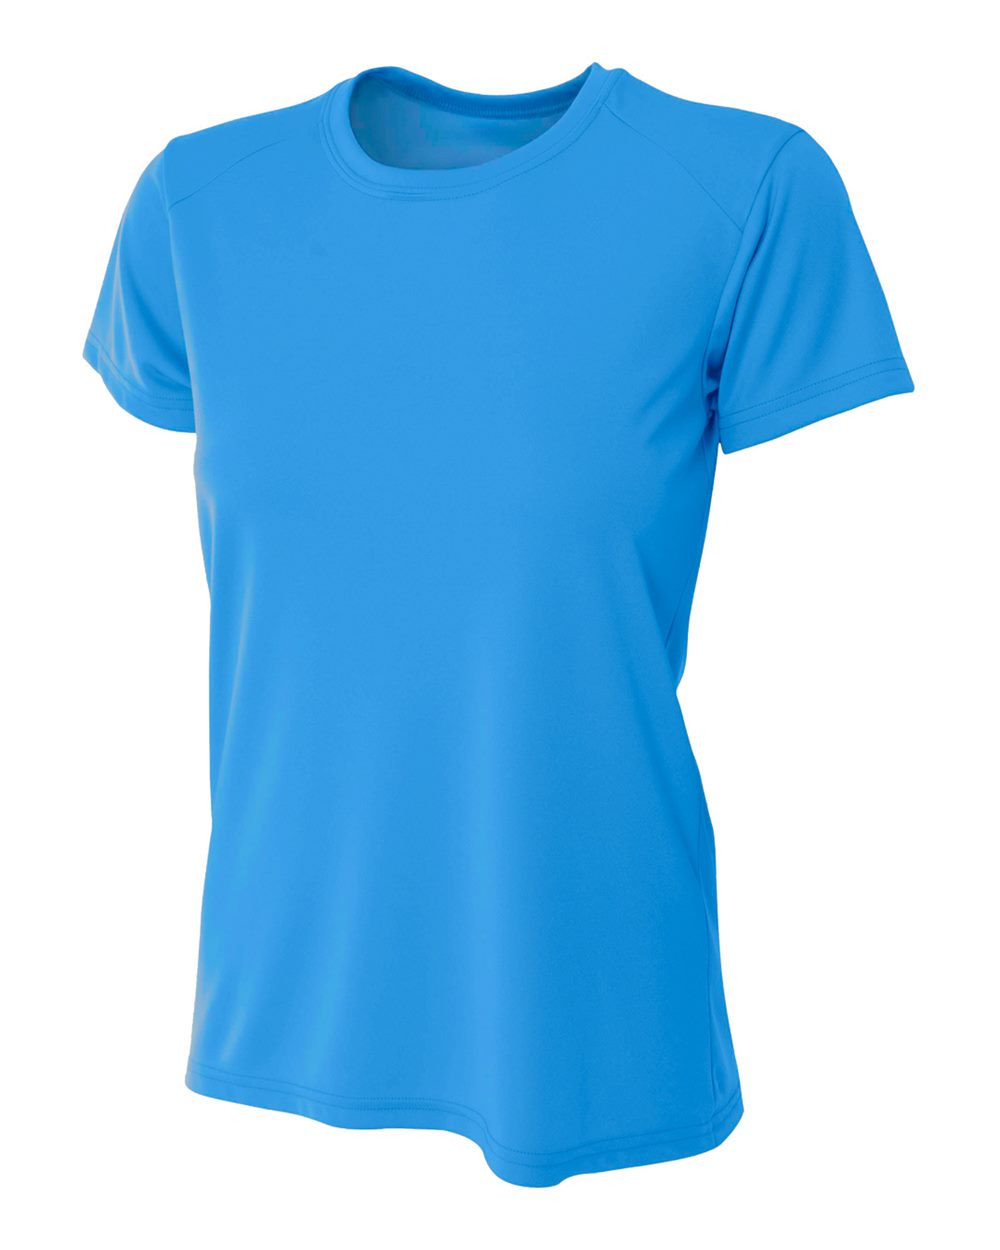 womens-polo-mwicking-electric-blue.jpg